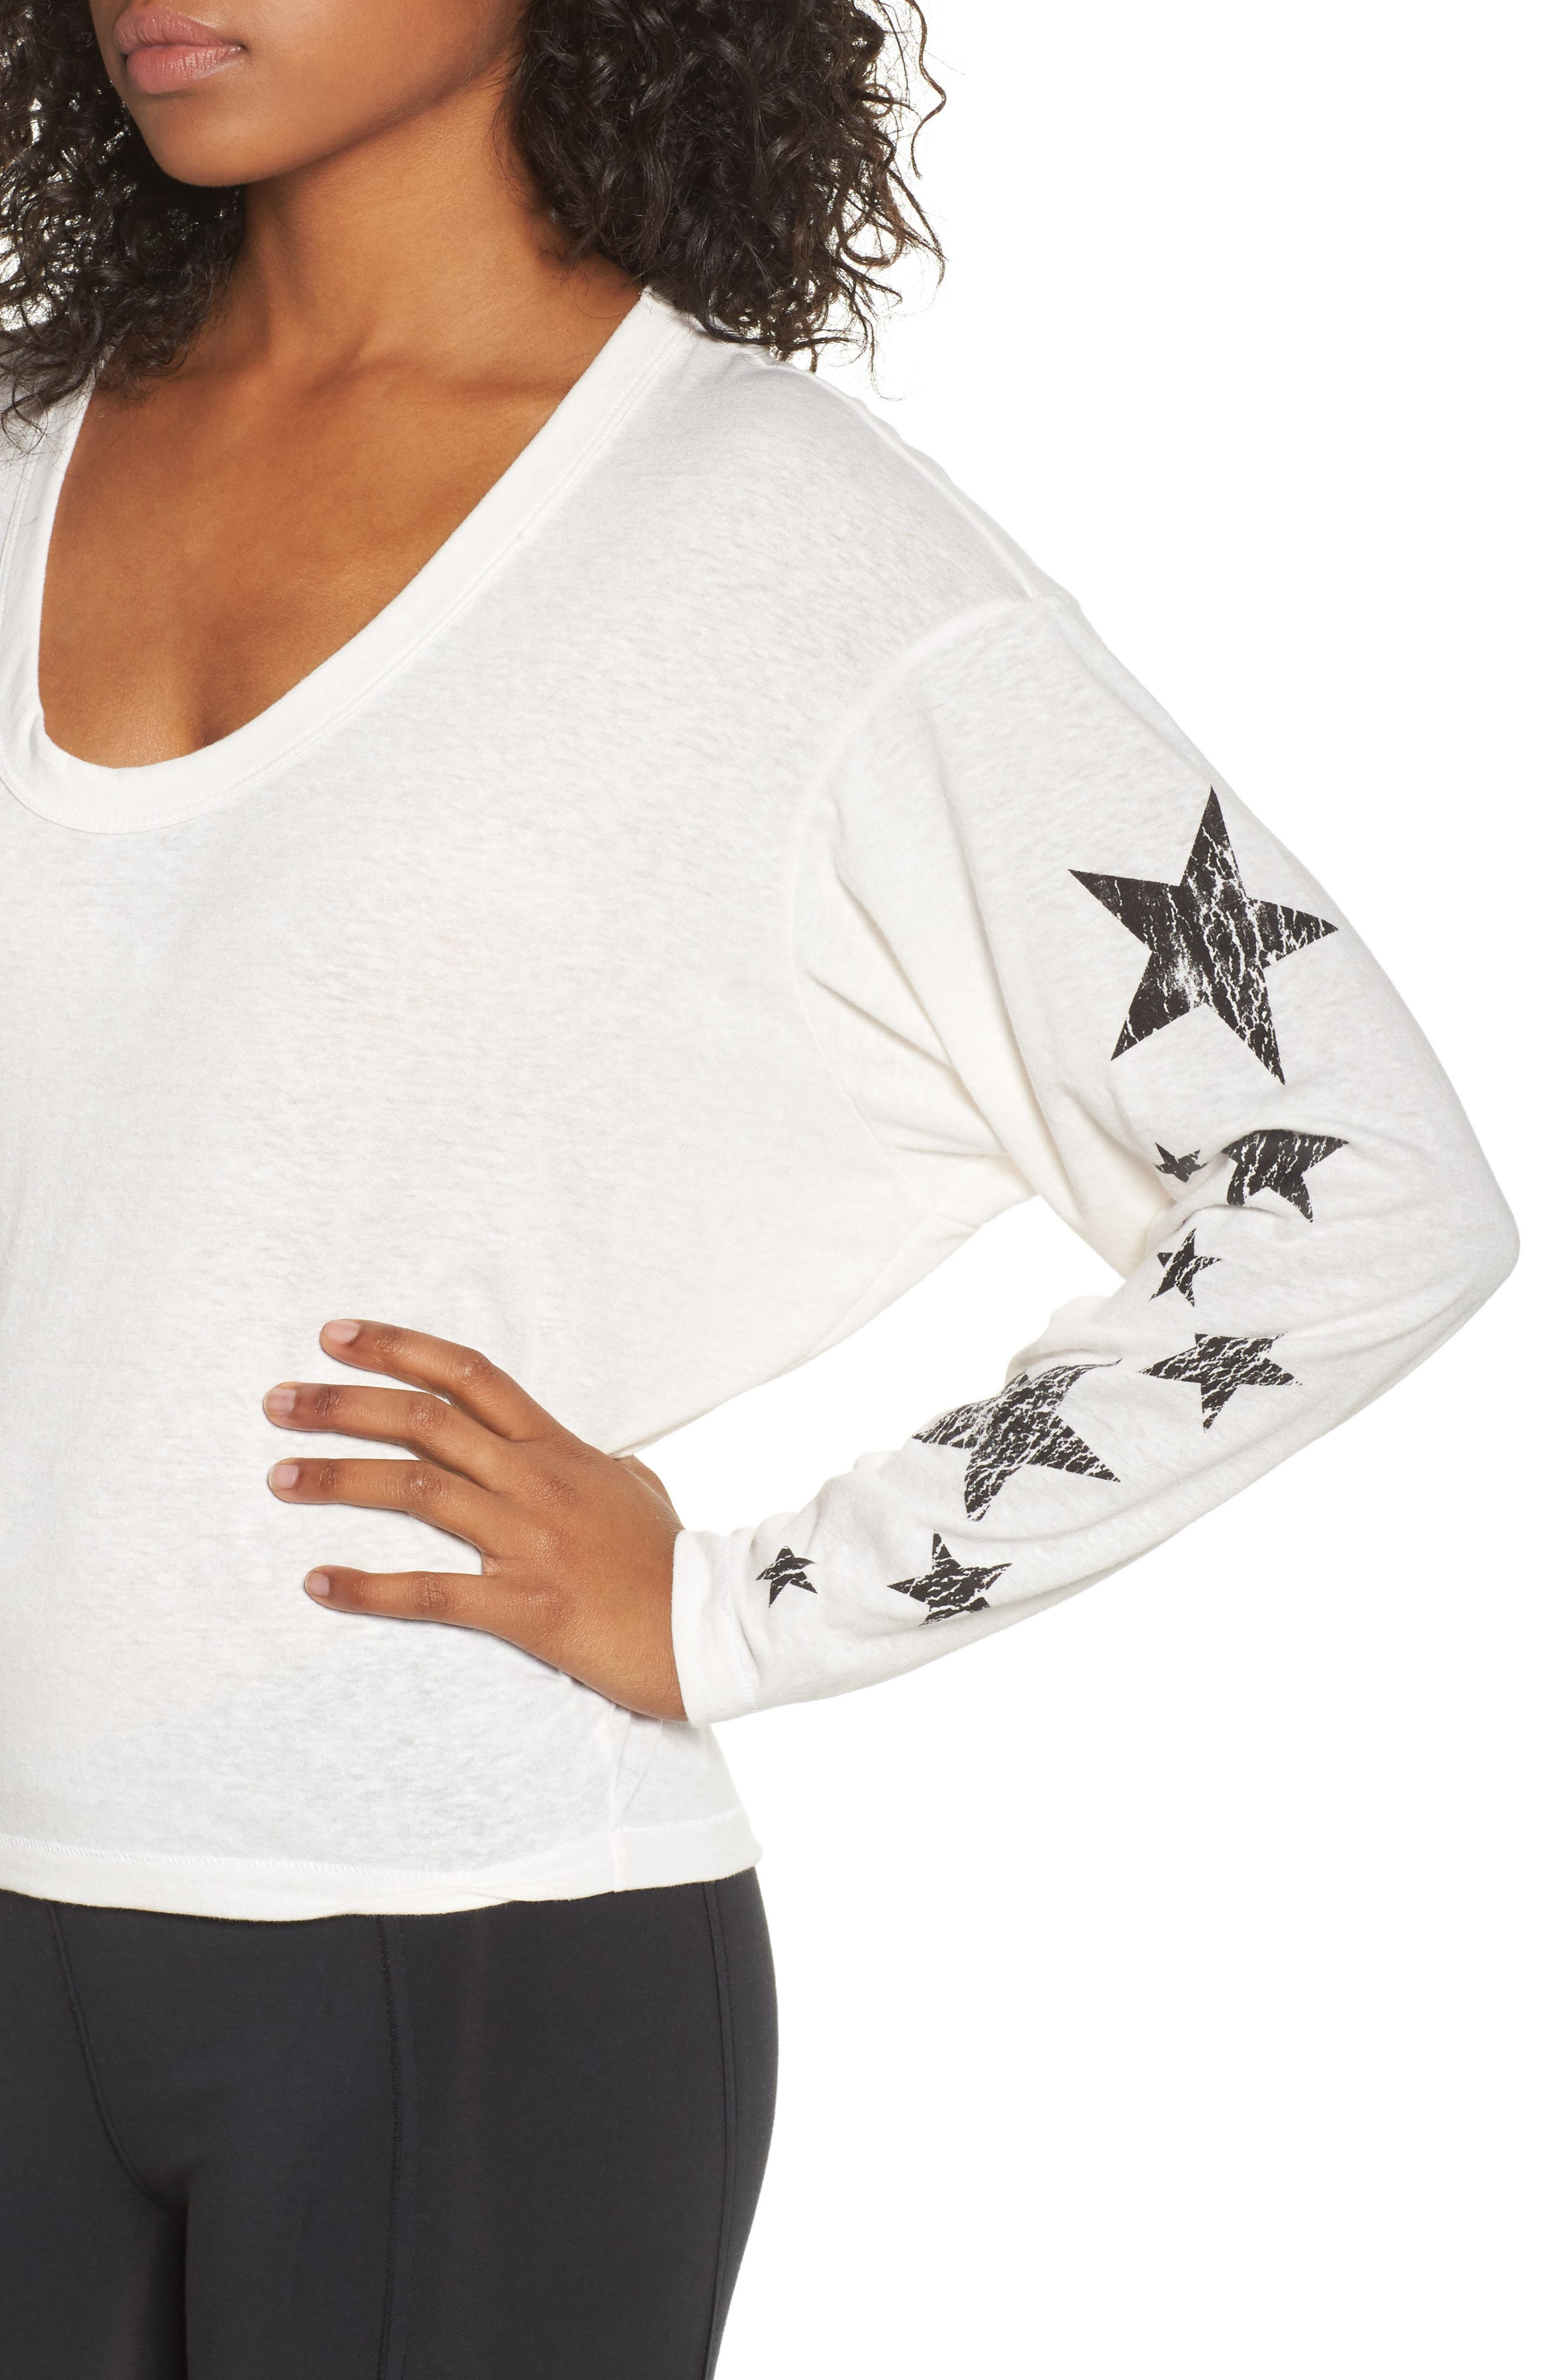 Free People Melrose Star Graphic Top,                             Alternate thumbnail 12, color,